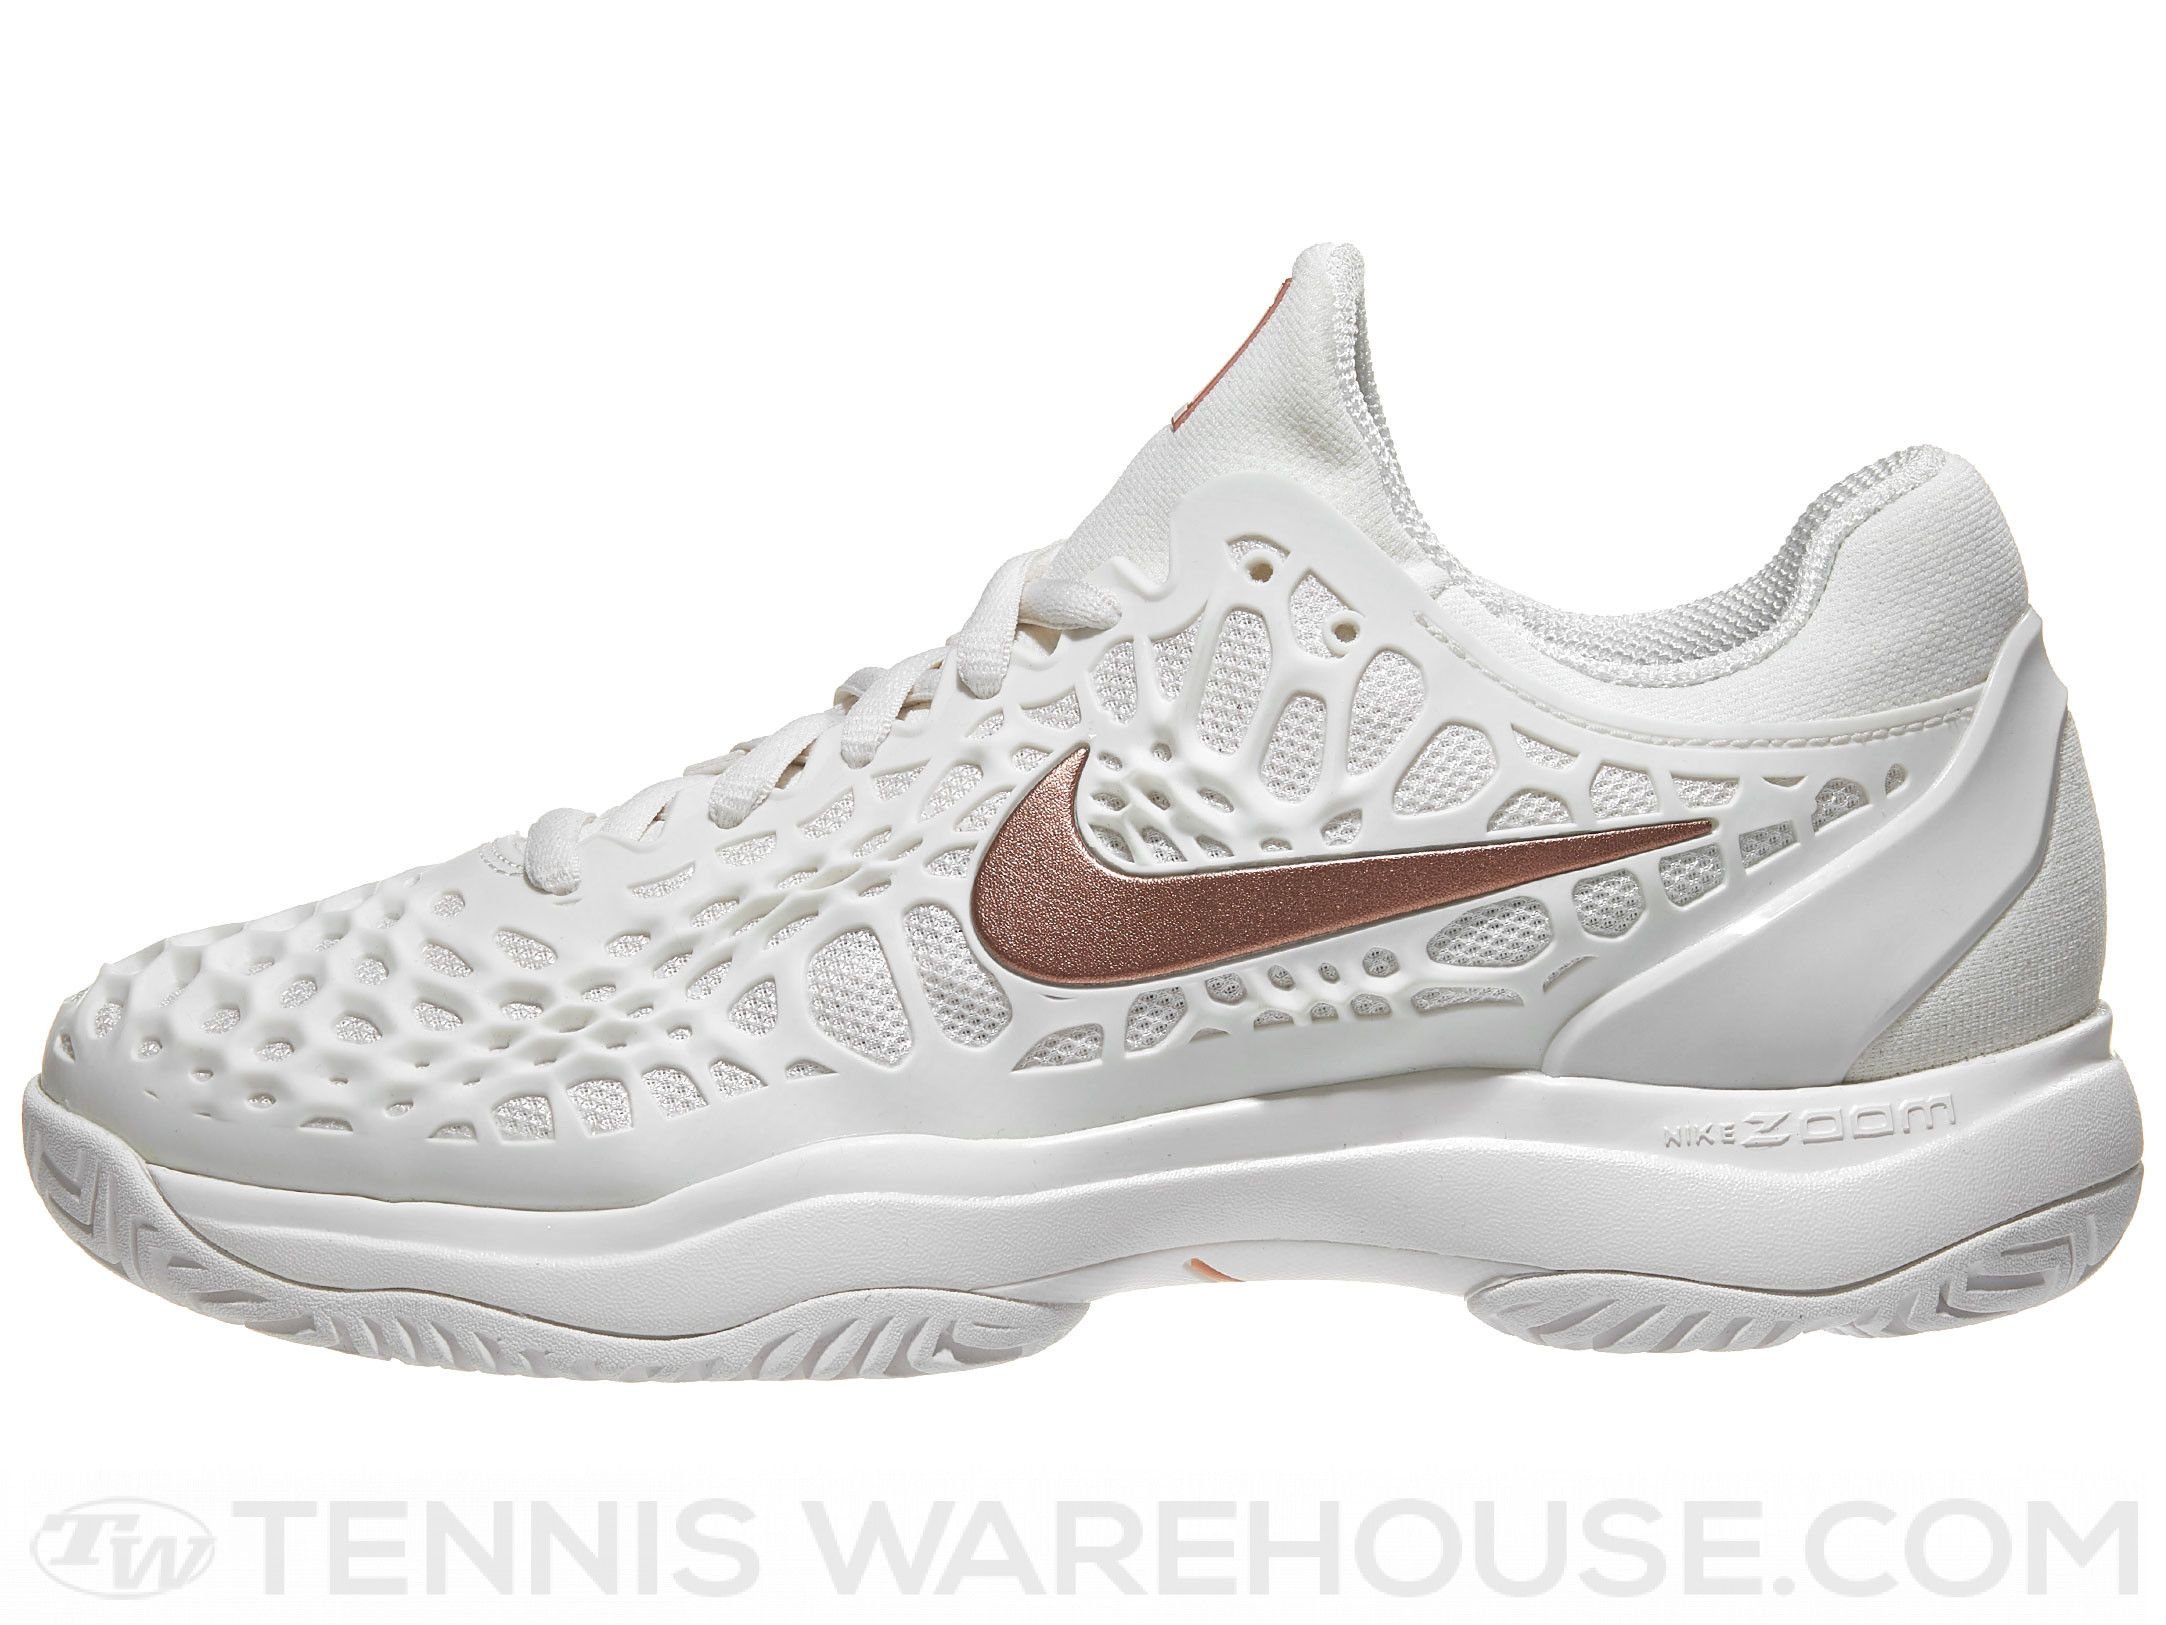 new styles 292b3 39239 Nike Air Zoom Cage 3 Rose Gold Womens Shoe